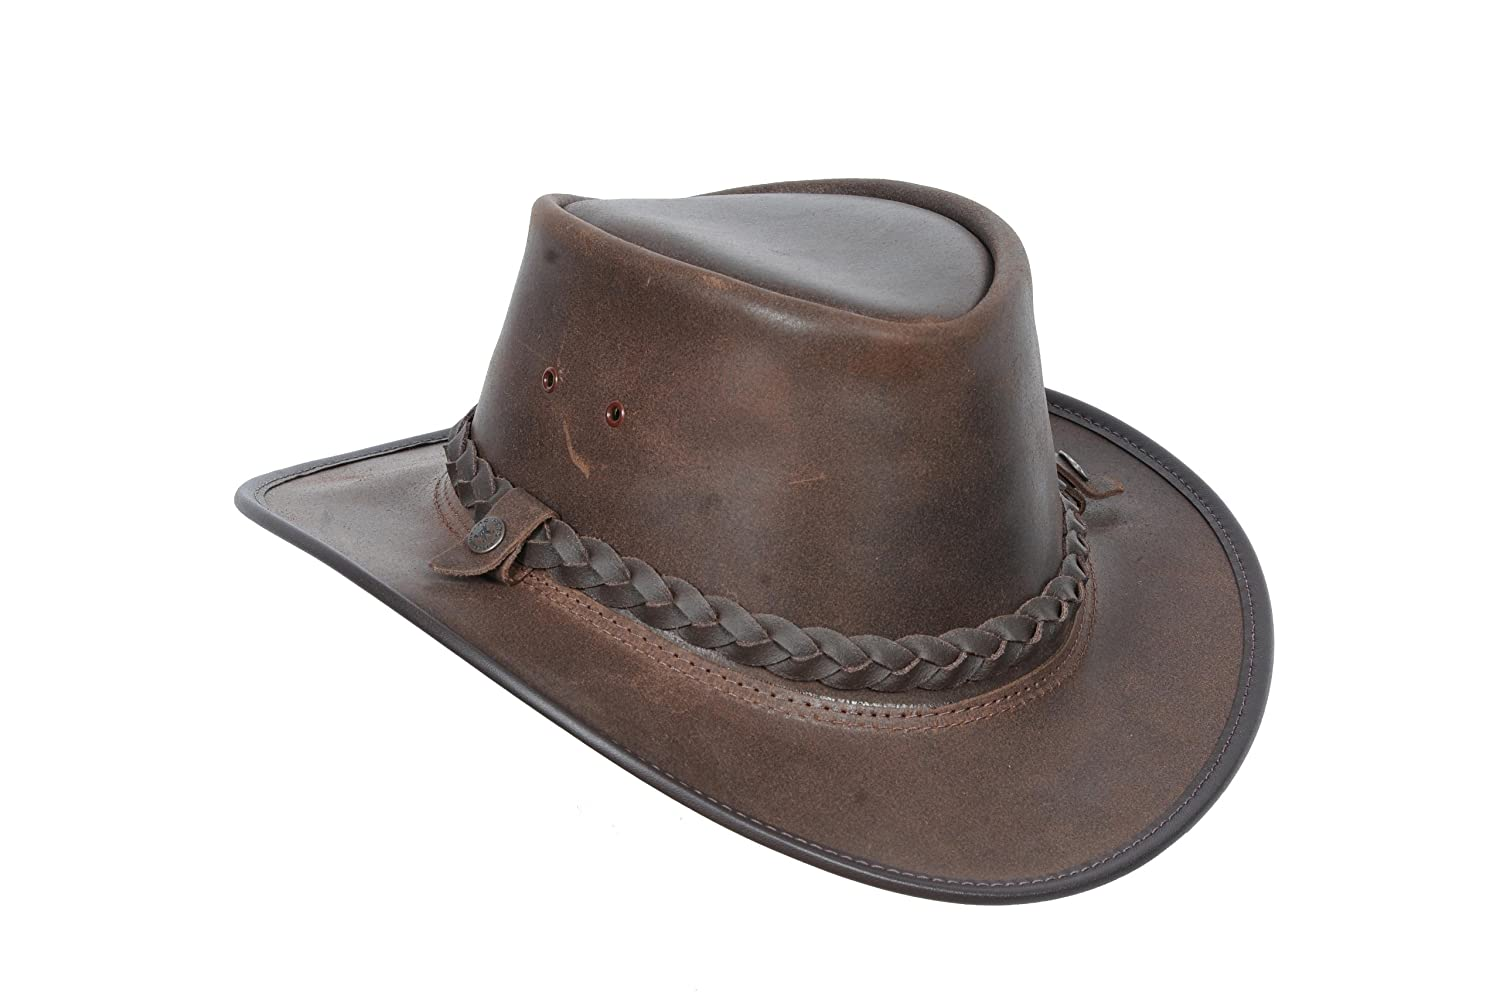 8f1ff5a4d86 Original Australian Bush Leather Hat Brown Real Leather Cowboy Style  Leather Hat  Amazon.co.uk  Clothing